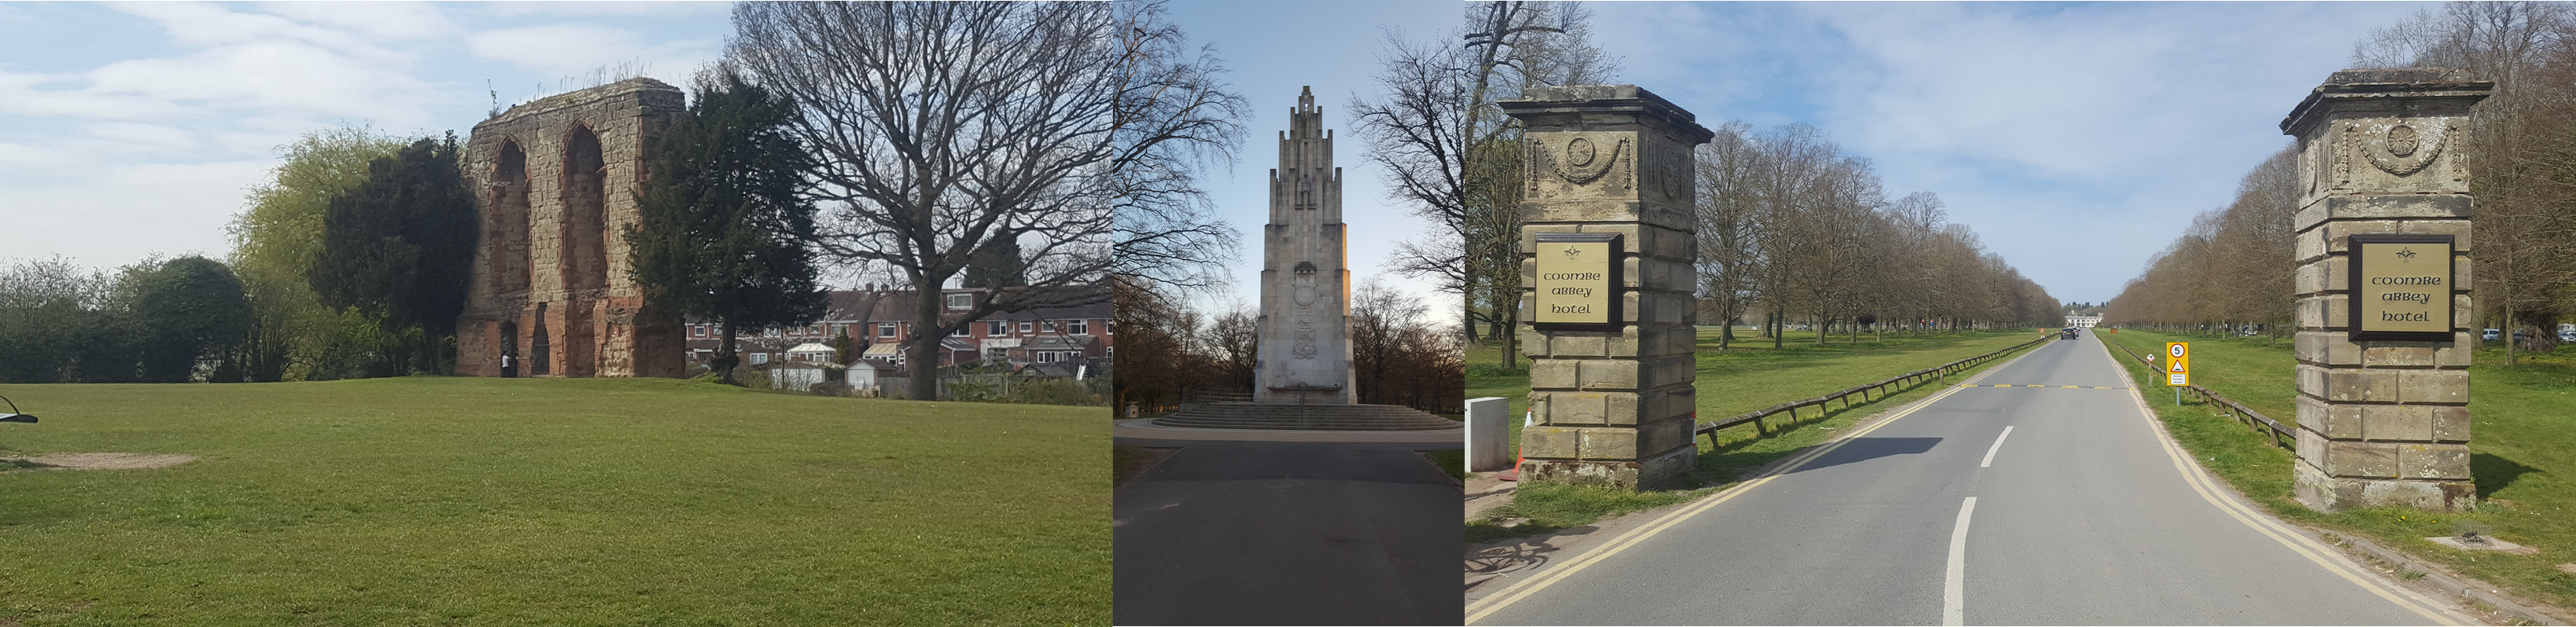 Parks: Caludon Castle, The War Memorial Park and Coombe Abbey. Take a closer look and it seems like the trees from Caludon and Coombe are growing into the War Memorial photo. Weird.....